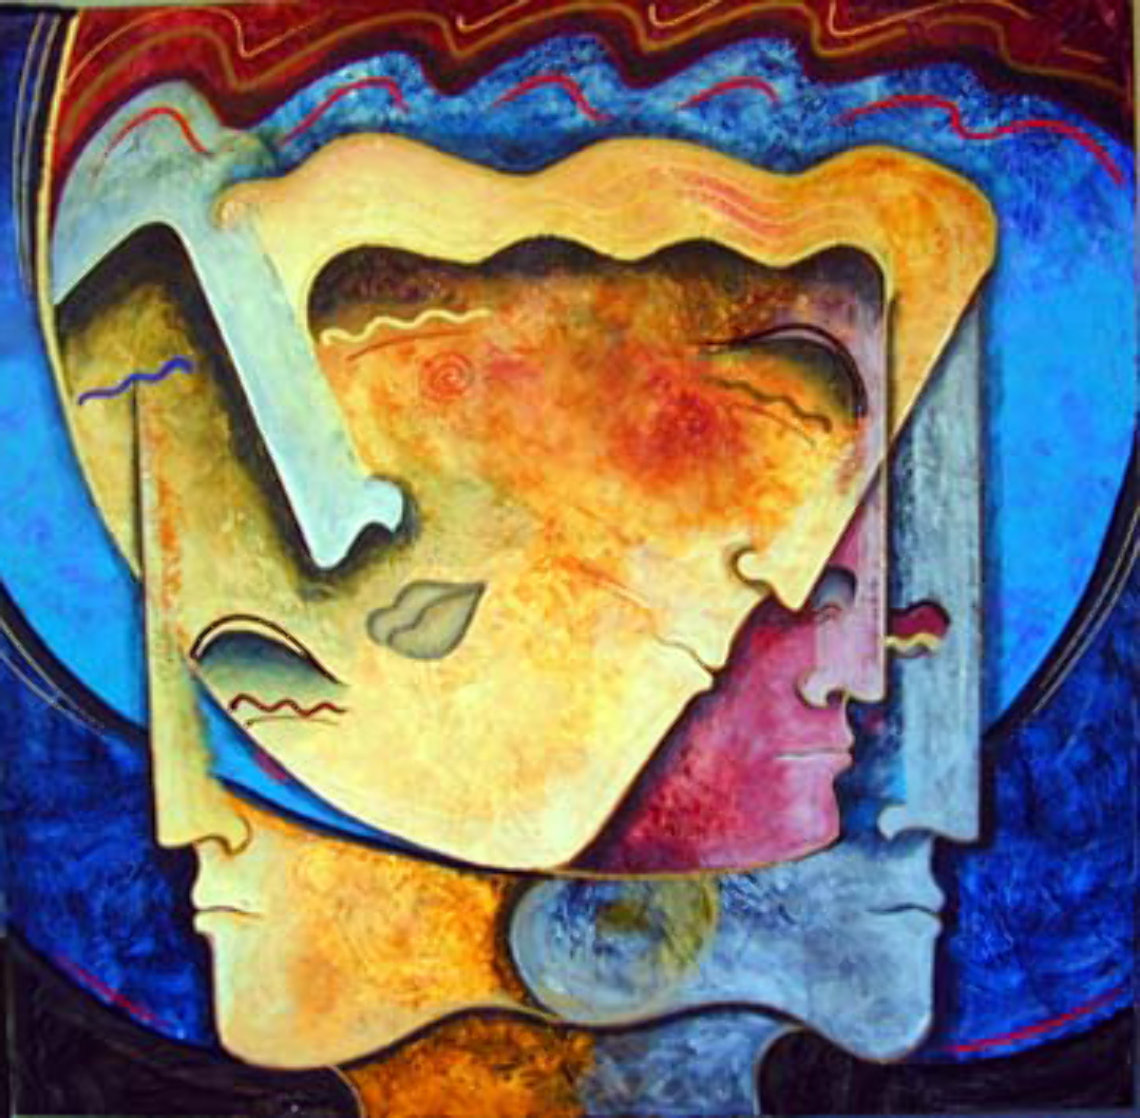 Faces of Man 60x60 Super Huge Original Painting by Gaylord Soli  (Gaylord)